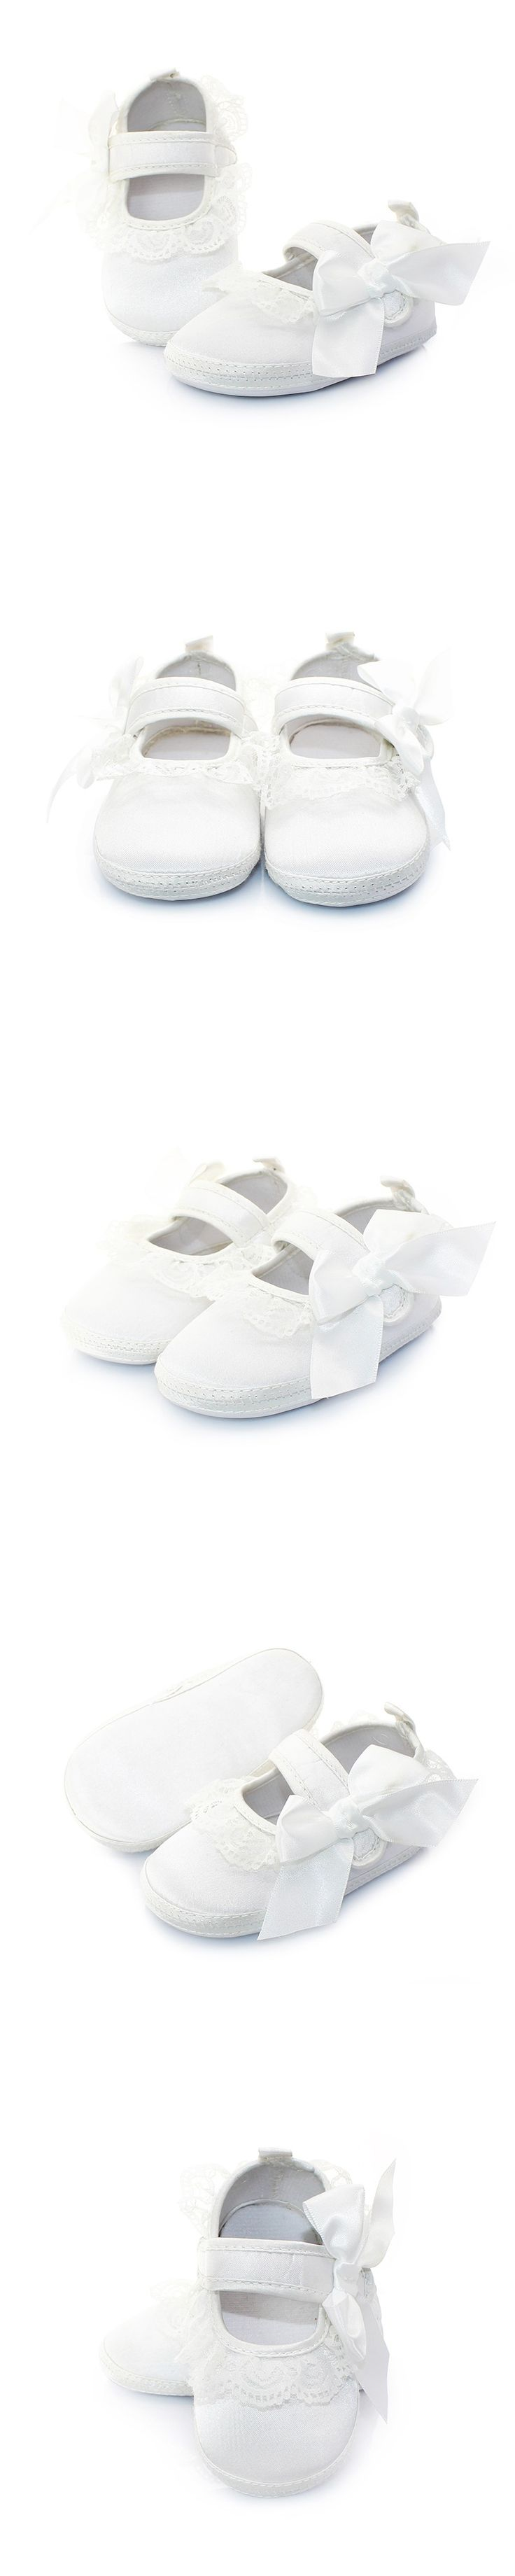 Side Stick Bowknot Baptism Cotton White Baby Shoes For 0-2 Years Old Handmade High Quality Cotton Shallow Baby Shoes Wholesale